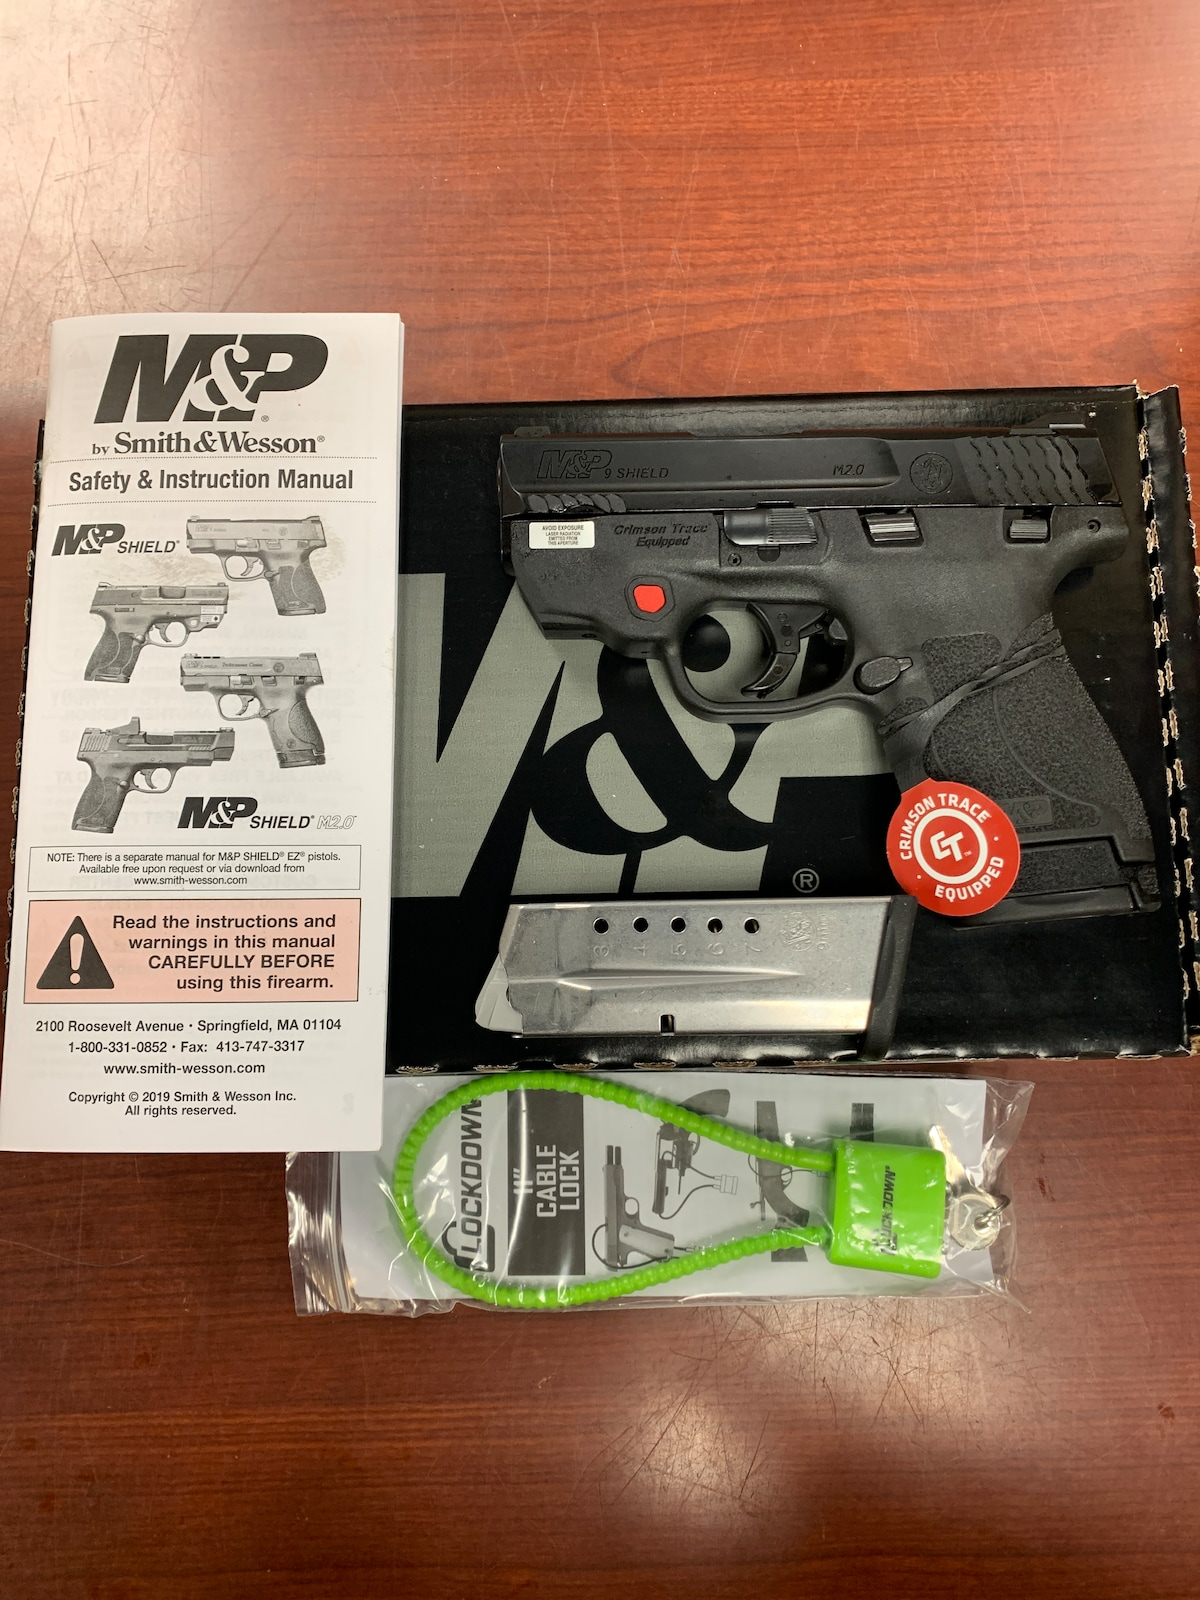 SMITH & WESSON m&p9 shield m2.0 thumb safety crimson trace laser